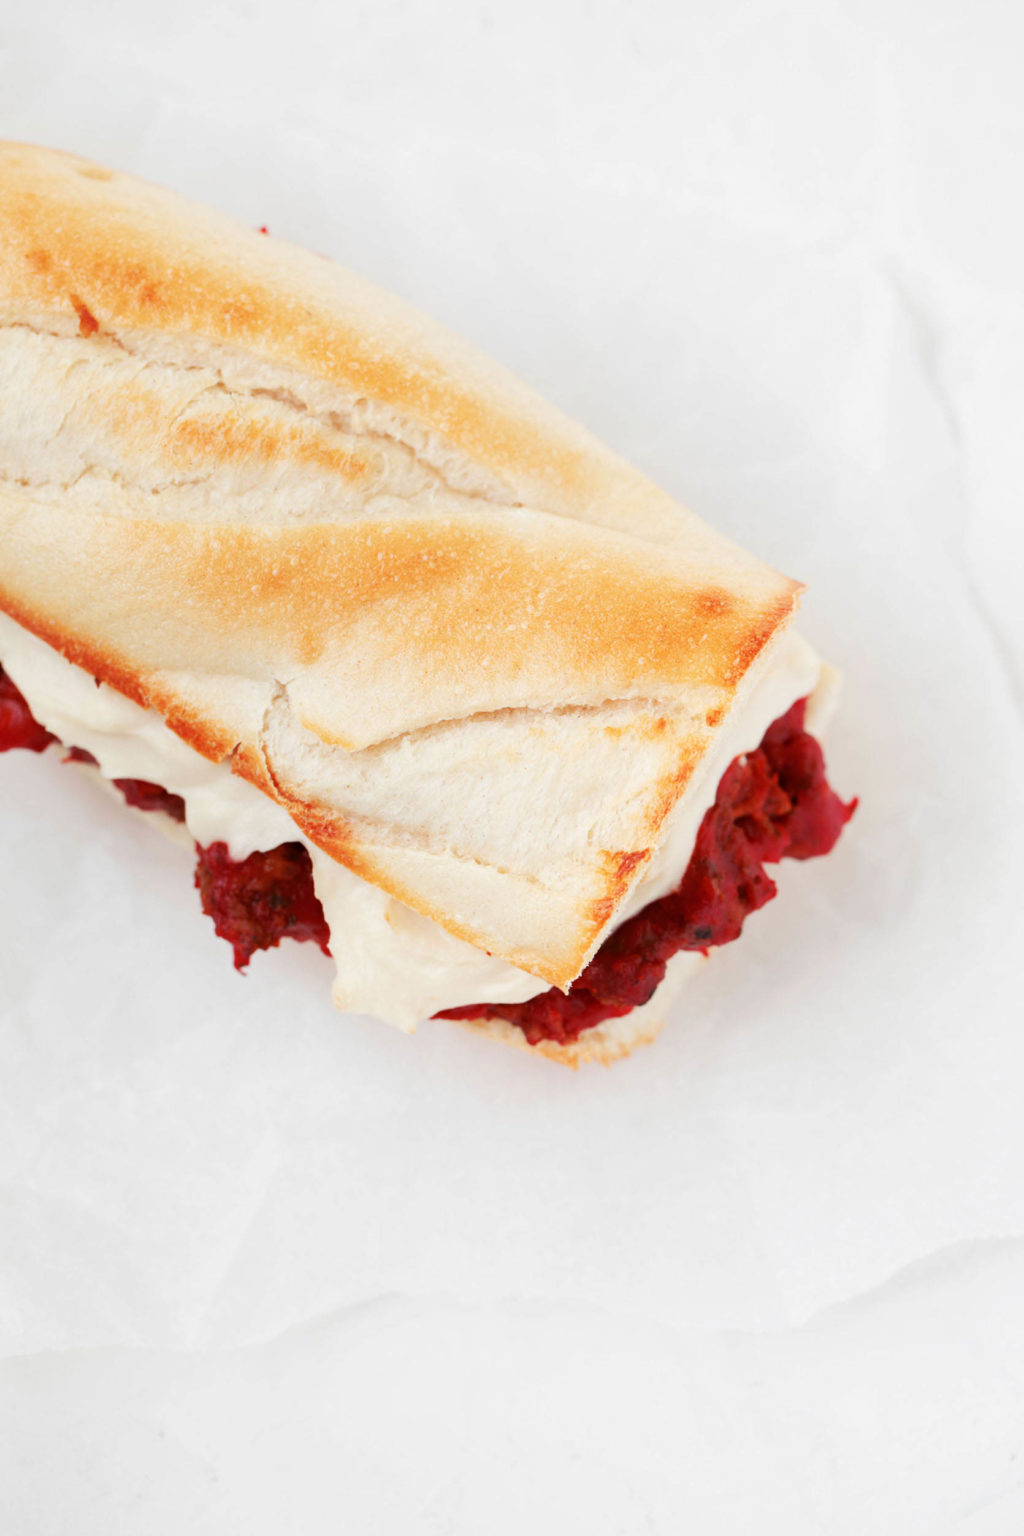 An overhead image of sliced Italian bread, which has been piled with red sauce and a creamy cheese sauce. It rests on a piece of parchment paper.